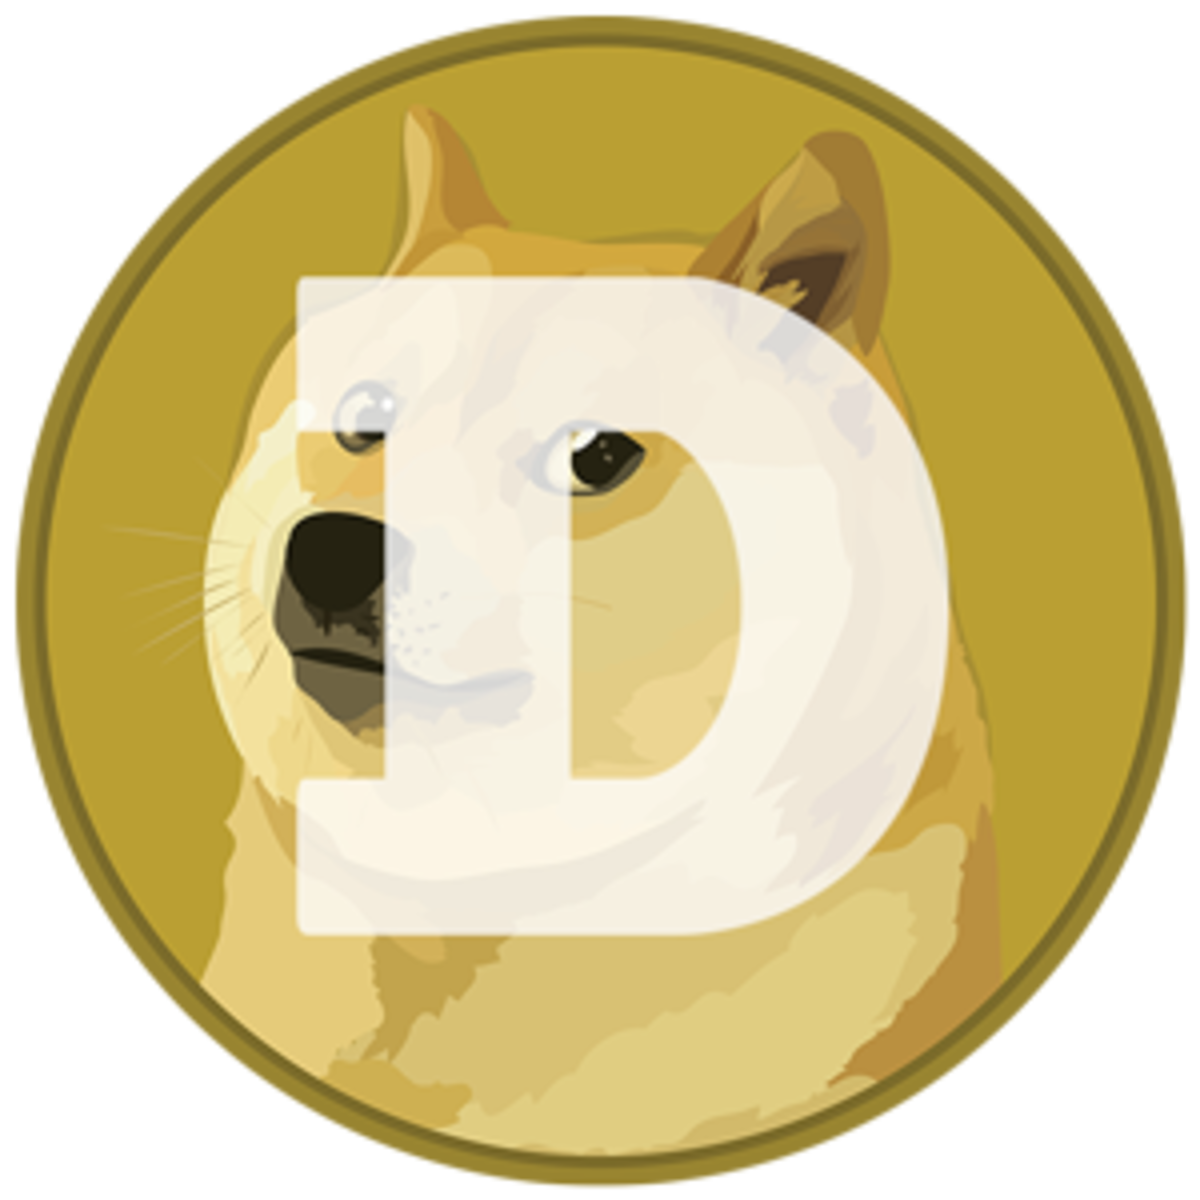 The generally accepted Dogecoin design.  Lookin' good!